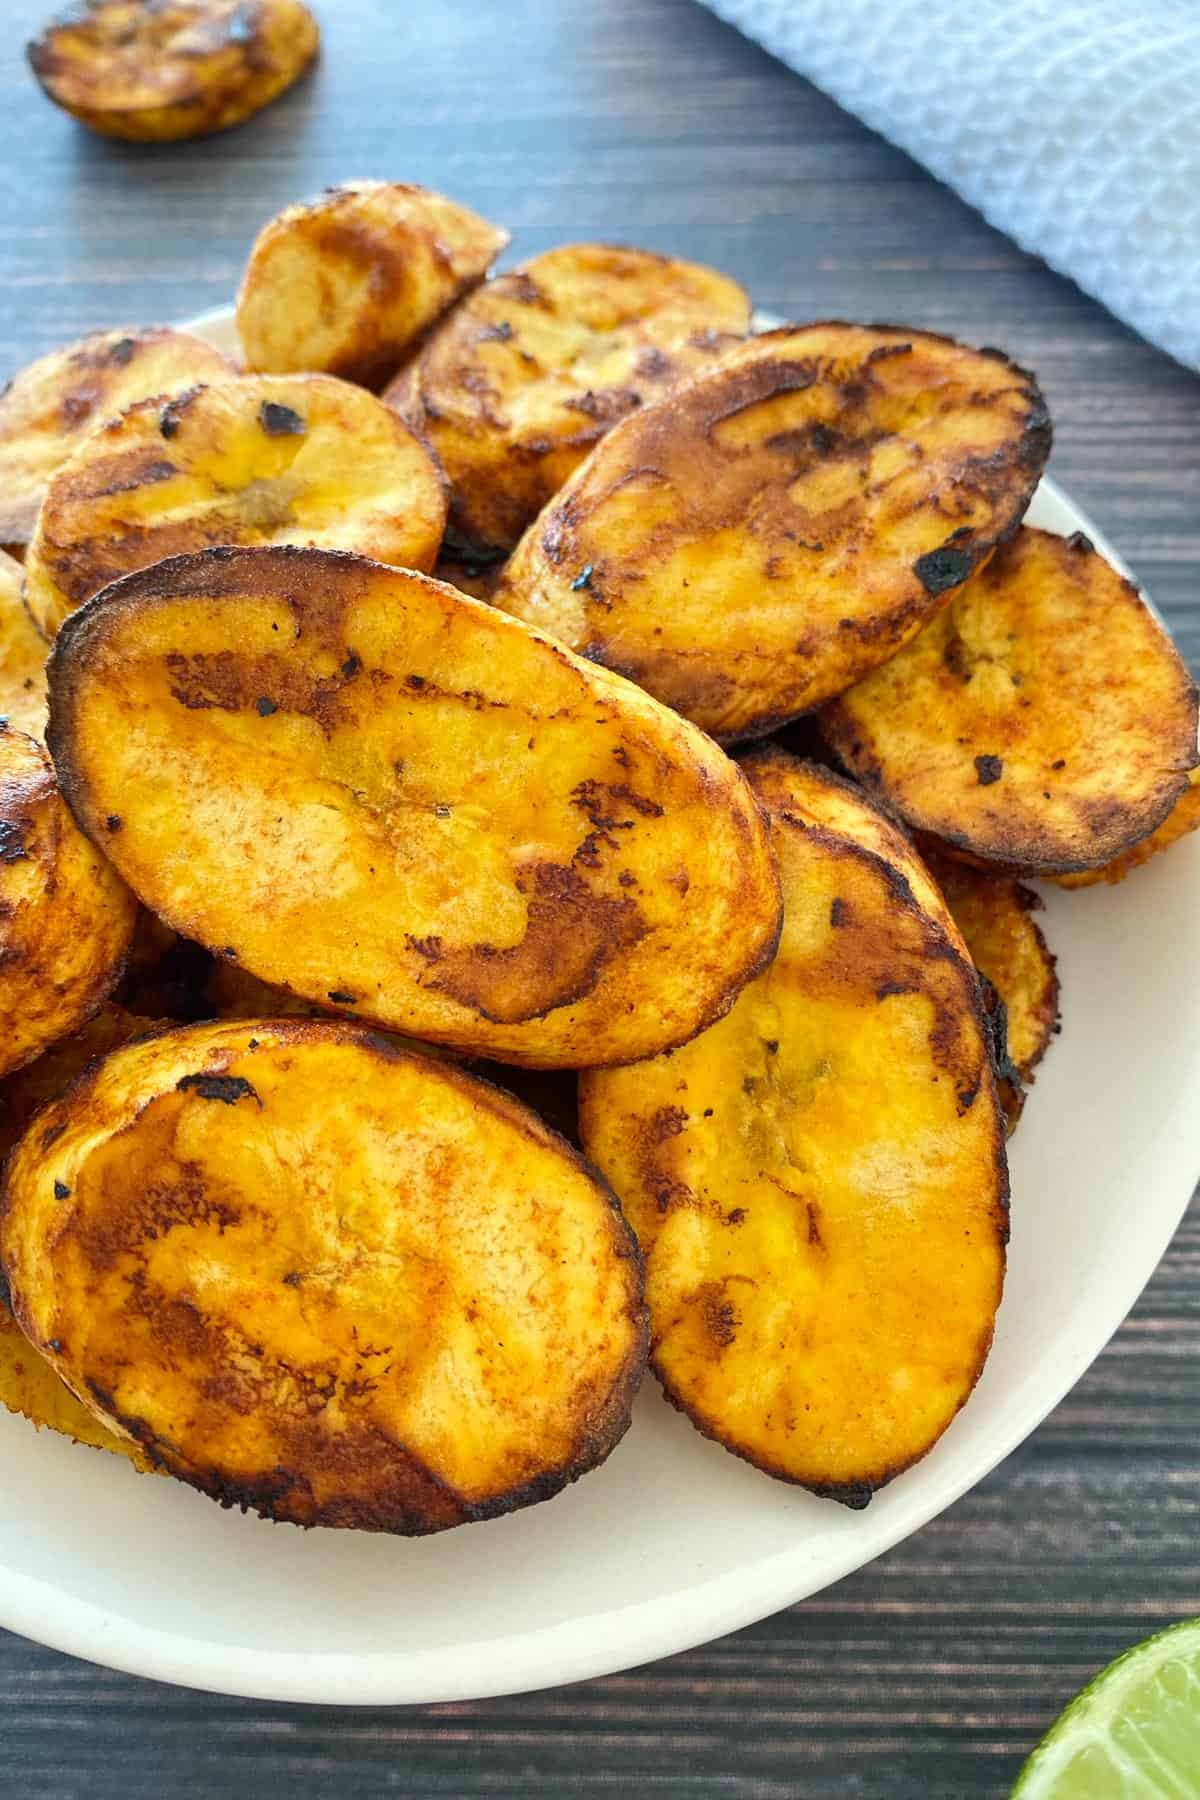 Plantain slices that have been air fried piled onto small white plate.